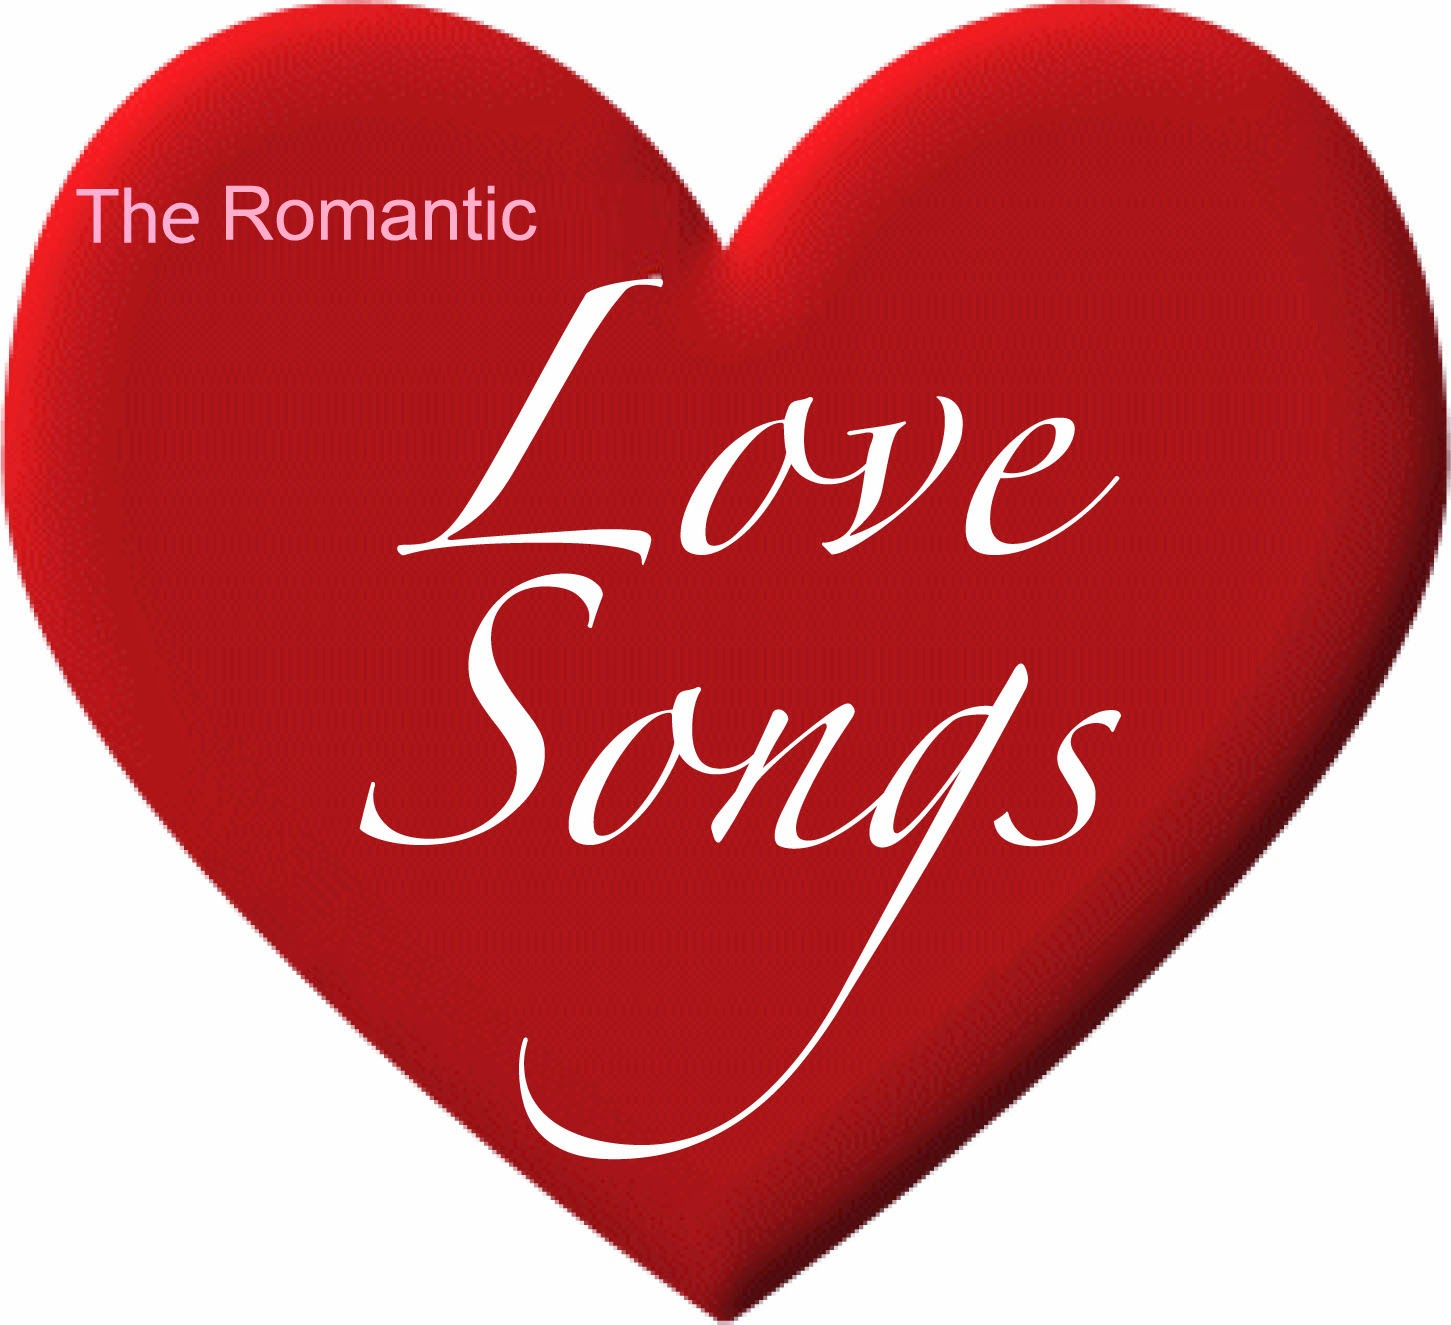 New romantic love songs